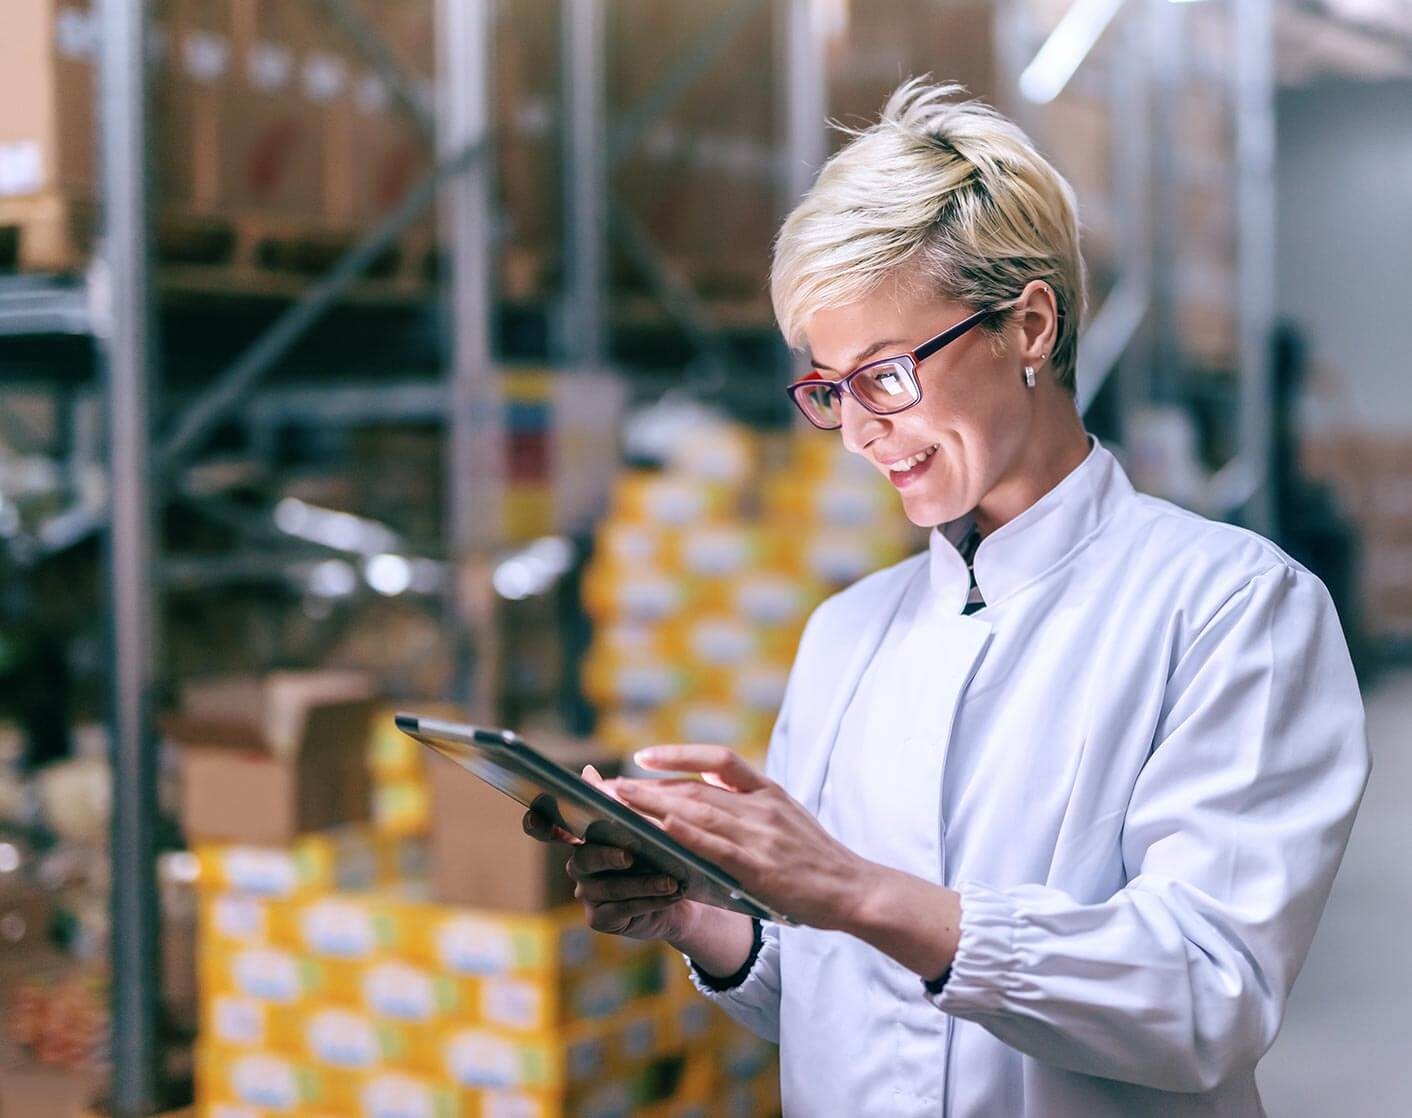 blonde woman with short hair in a warehouse looking at a tablet